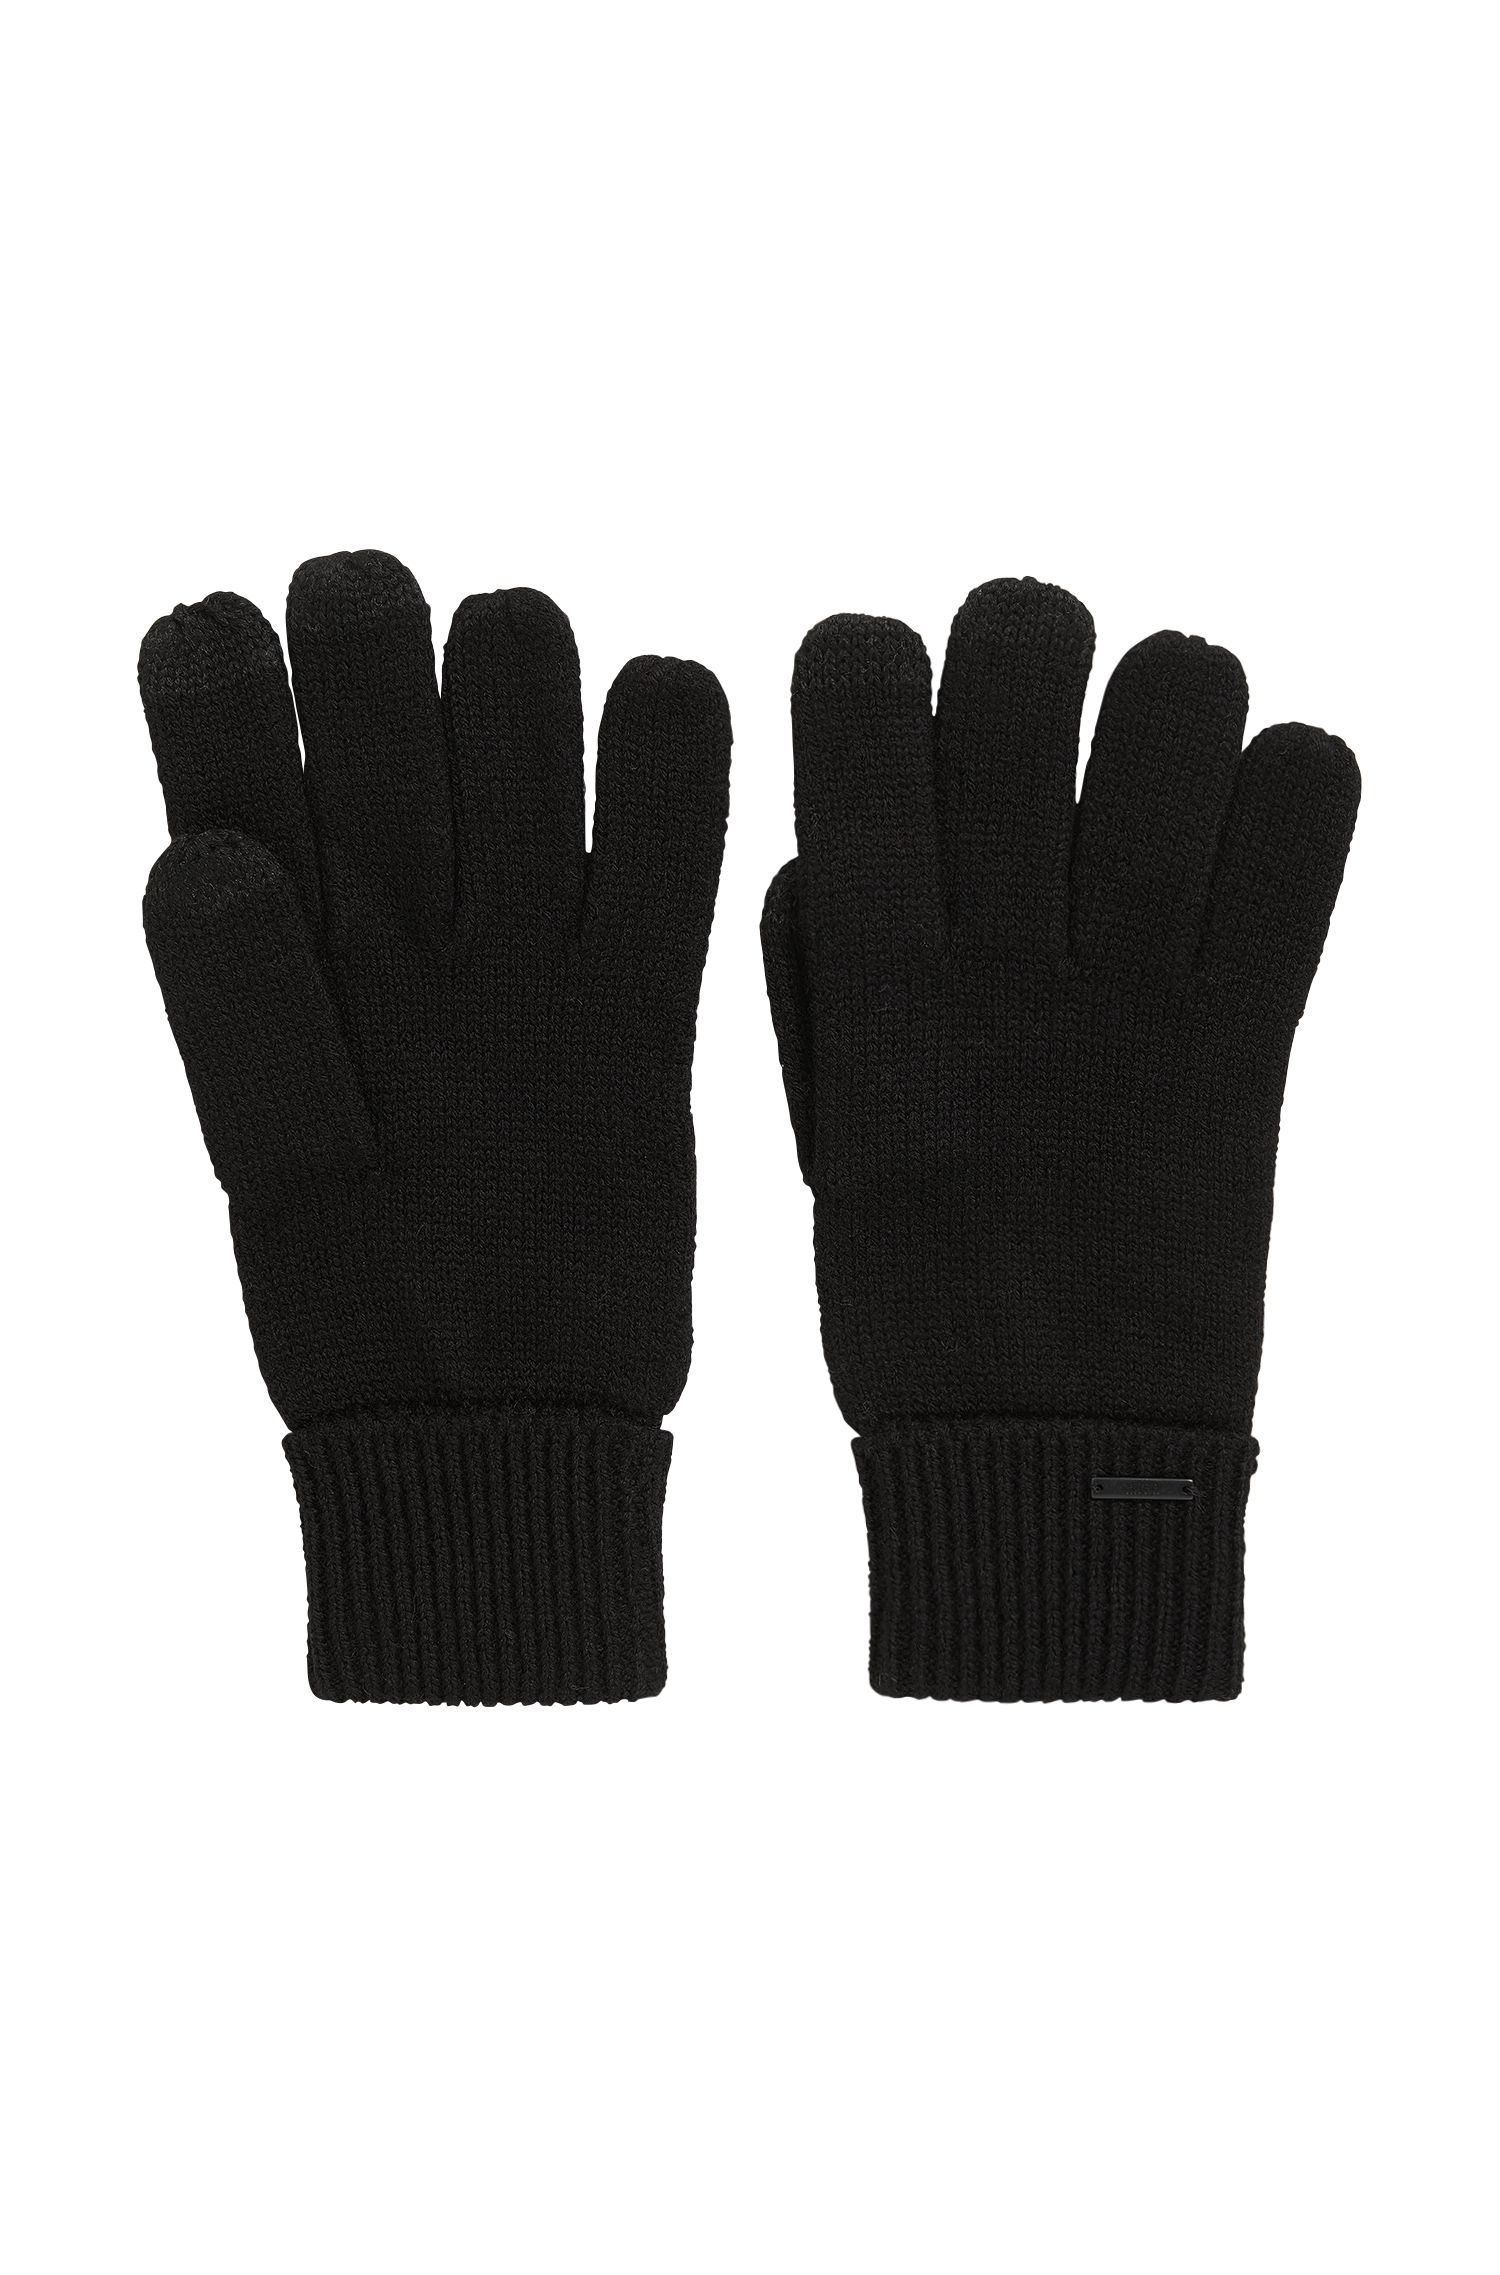 Knitted gloves in a wool blend